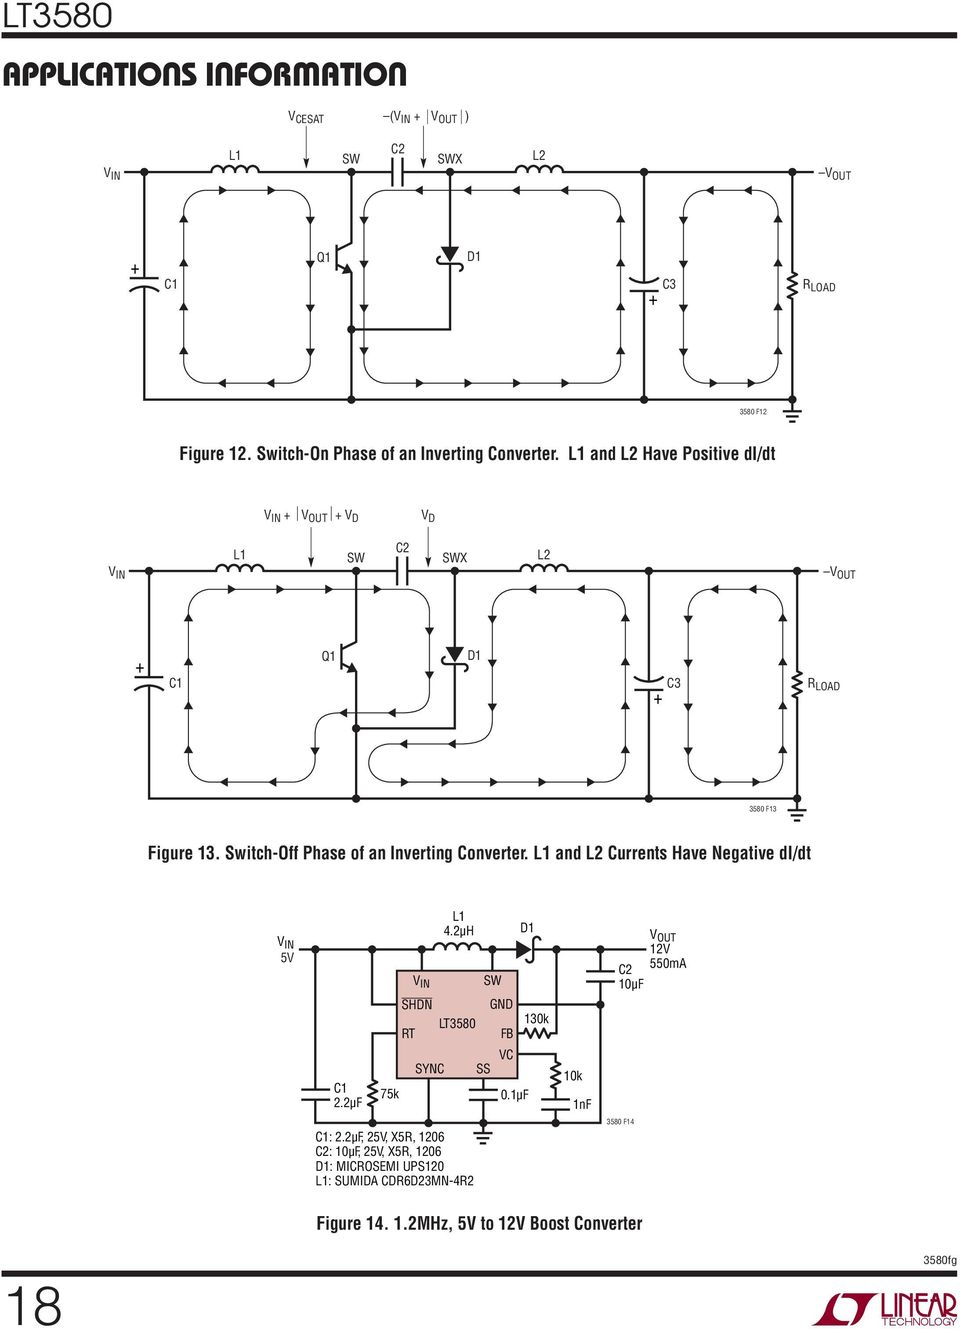 Lt K Boost Inverting Dc Converter With 2a Switch Soft Start Ltc4425 Linear Supercap Charger Electronc Circuit Diagram Off Phase Of An L And L2 Currents Have Negative Di